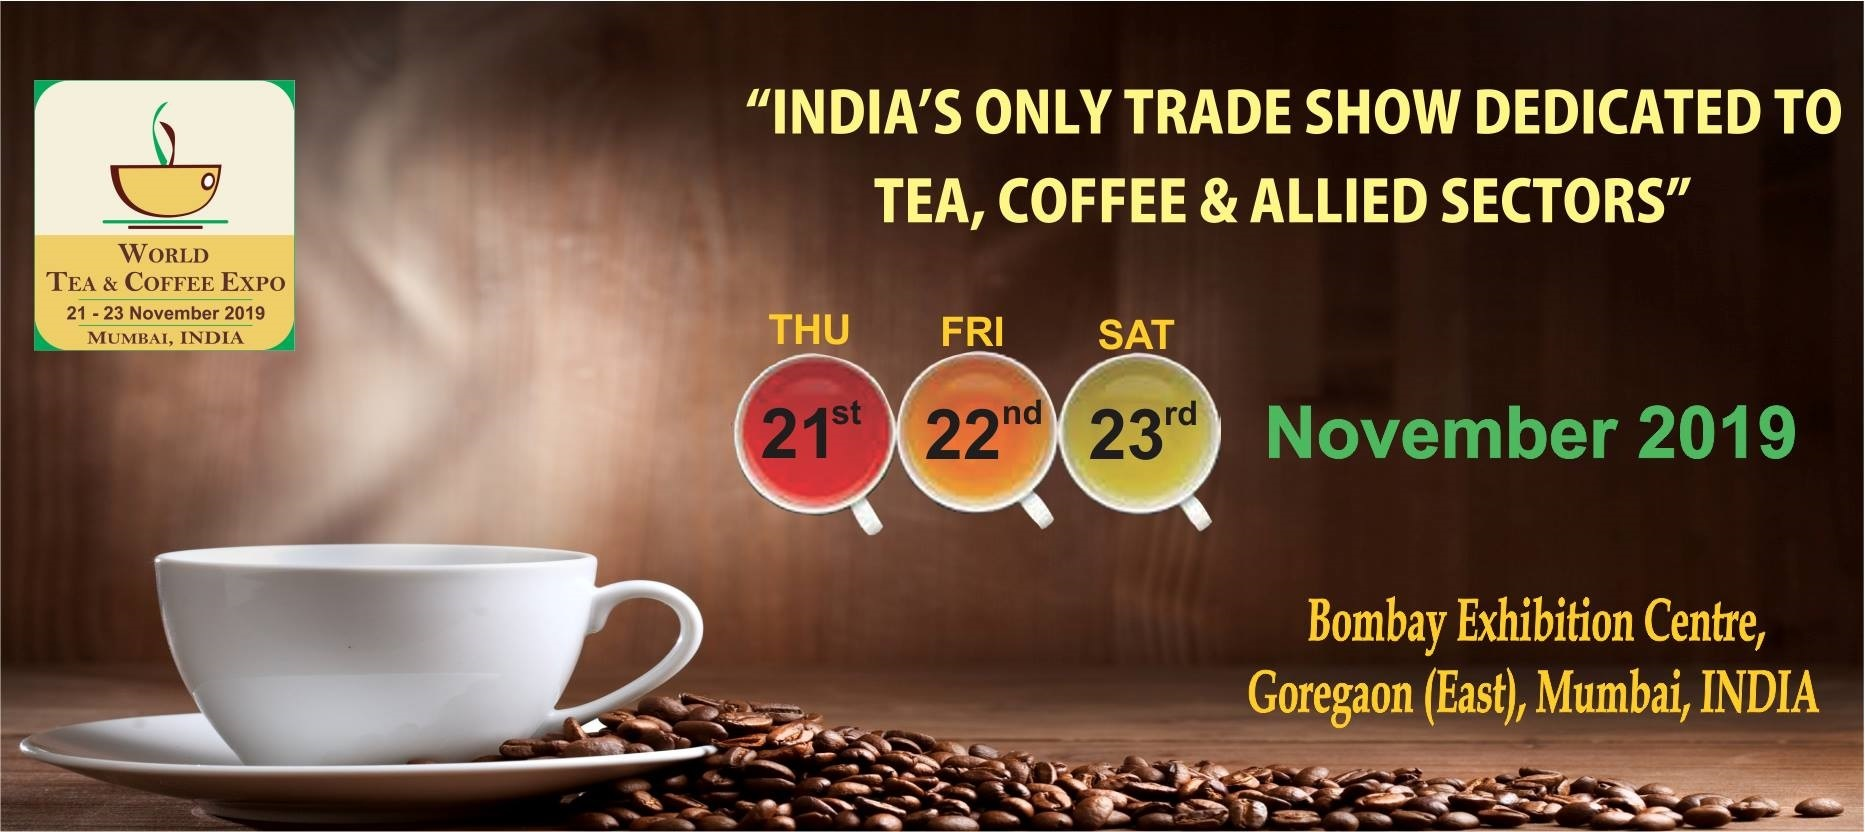 7TH WORLD TEA & COFFEE EXPO MUMBAI INDIA 2019